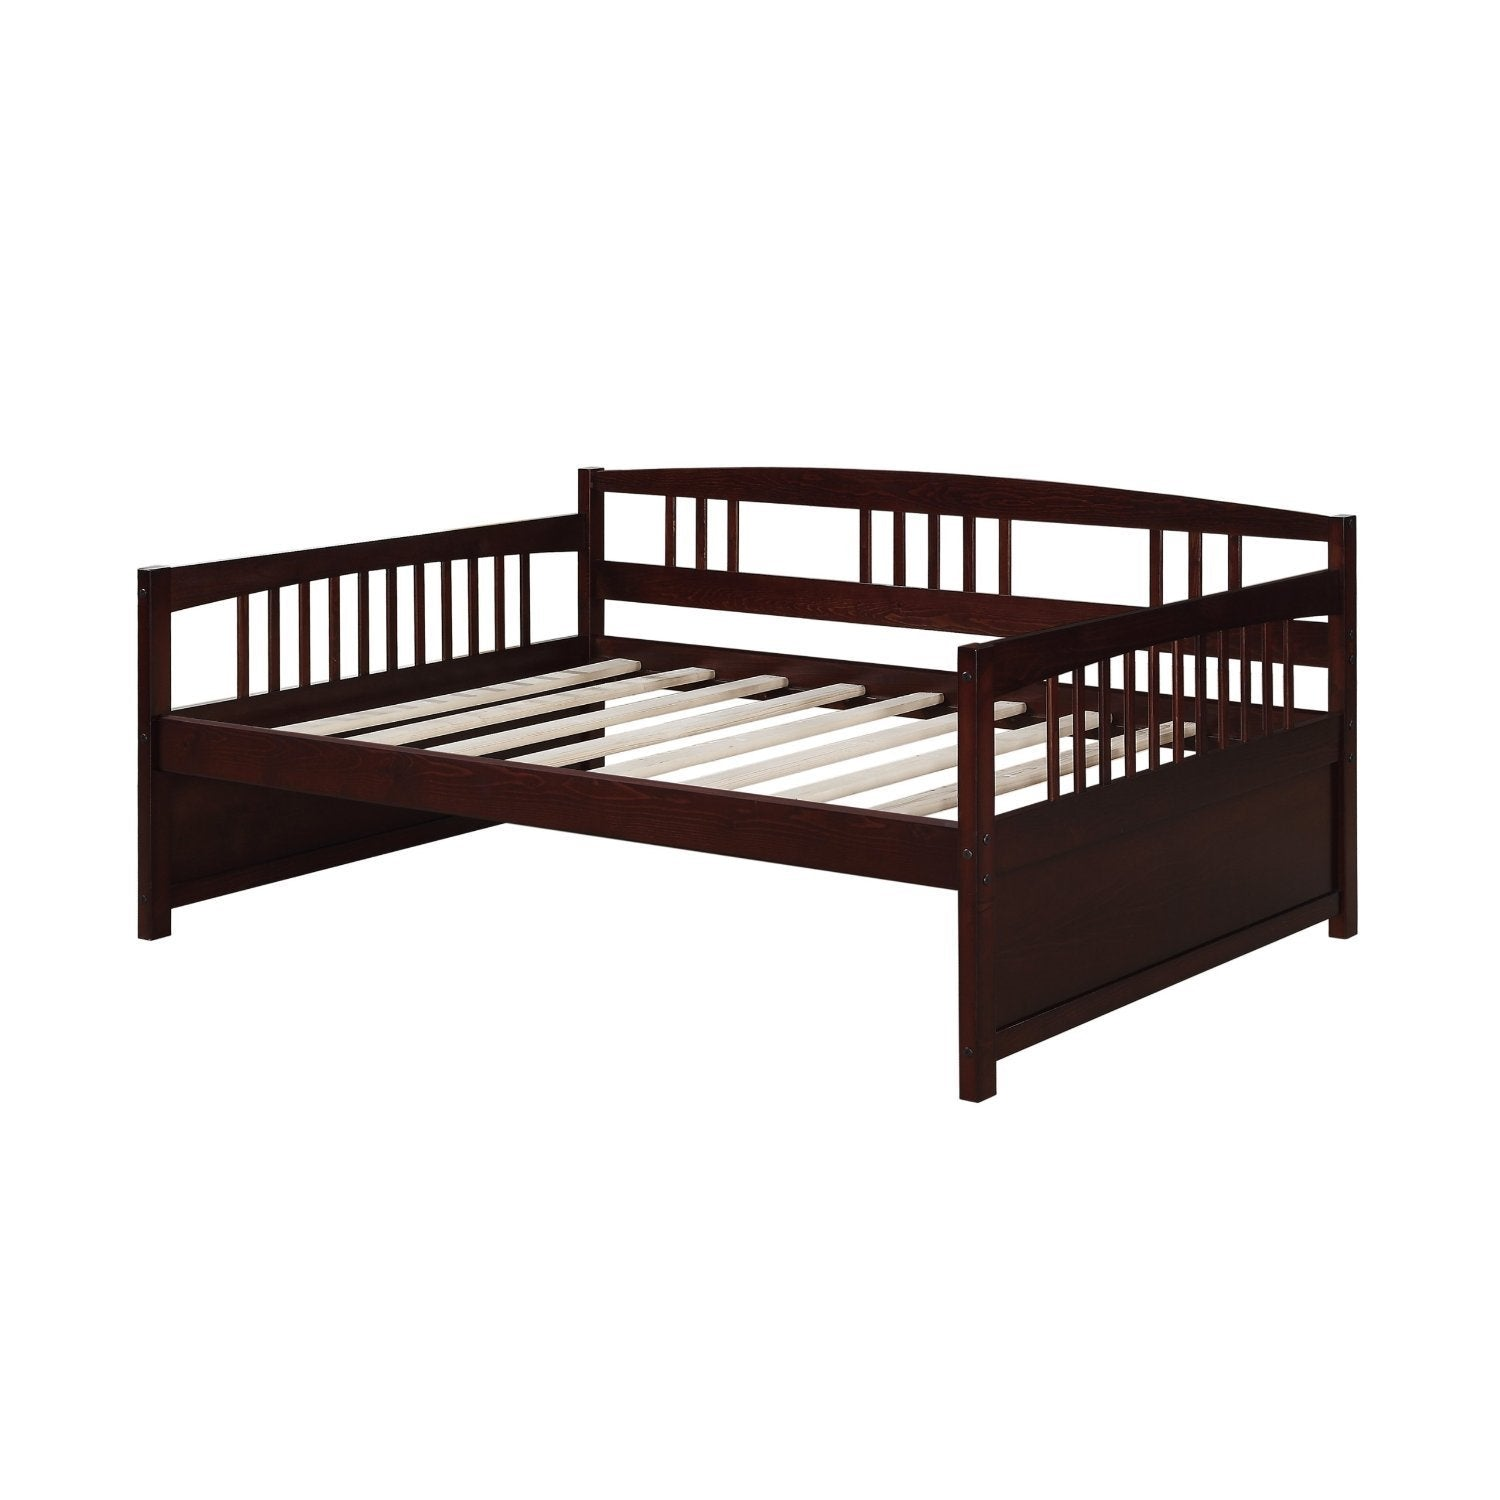 Aliza Full Size Daybed.